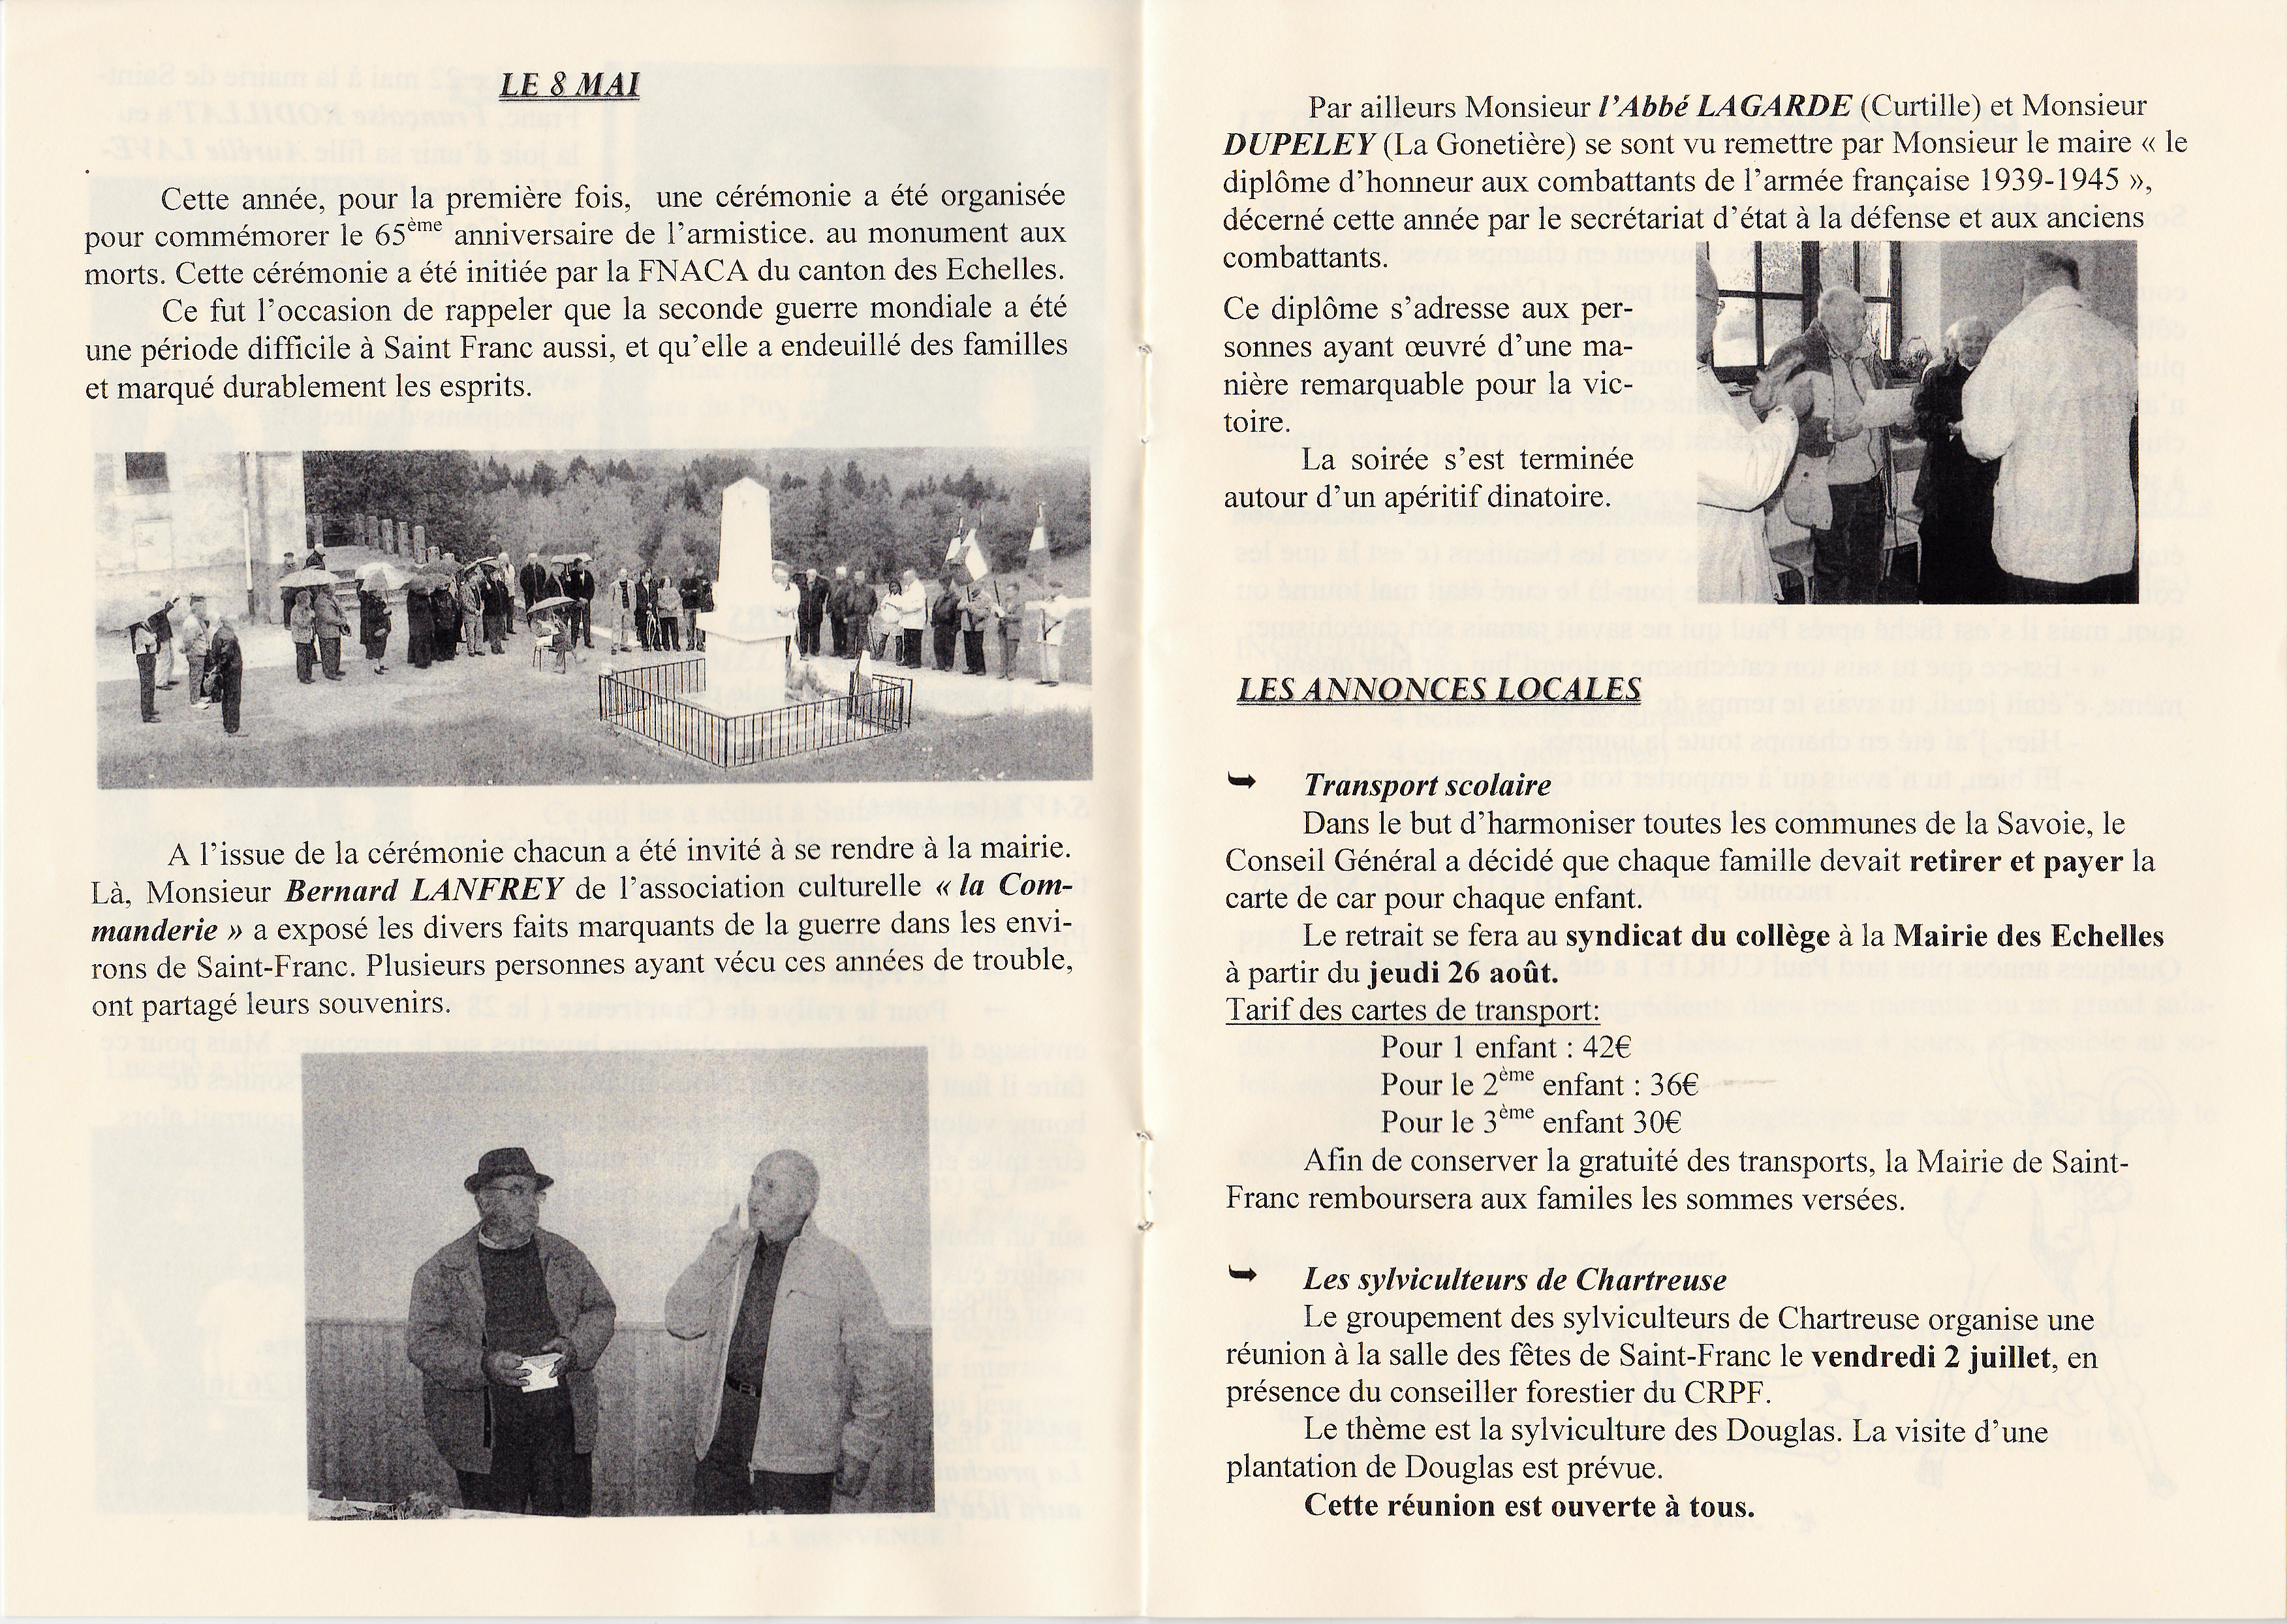 LPS n° 6 - Pages 4 & 5